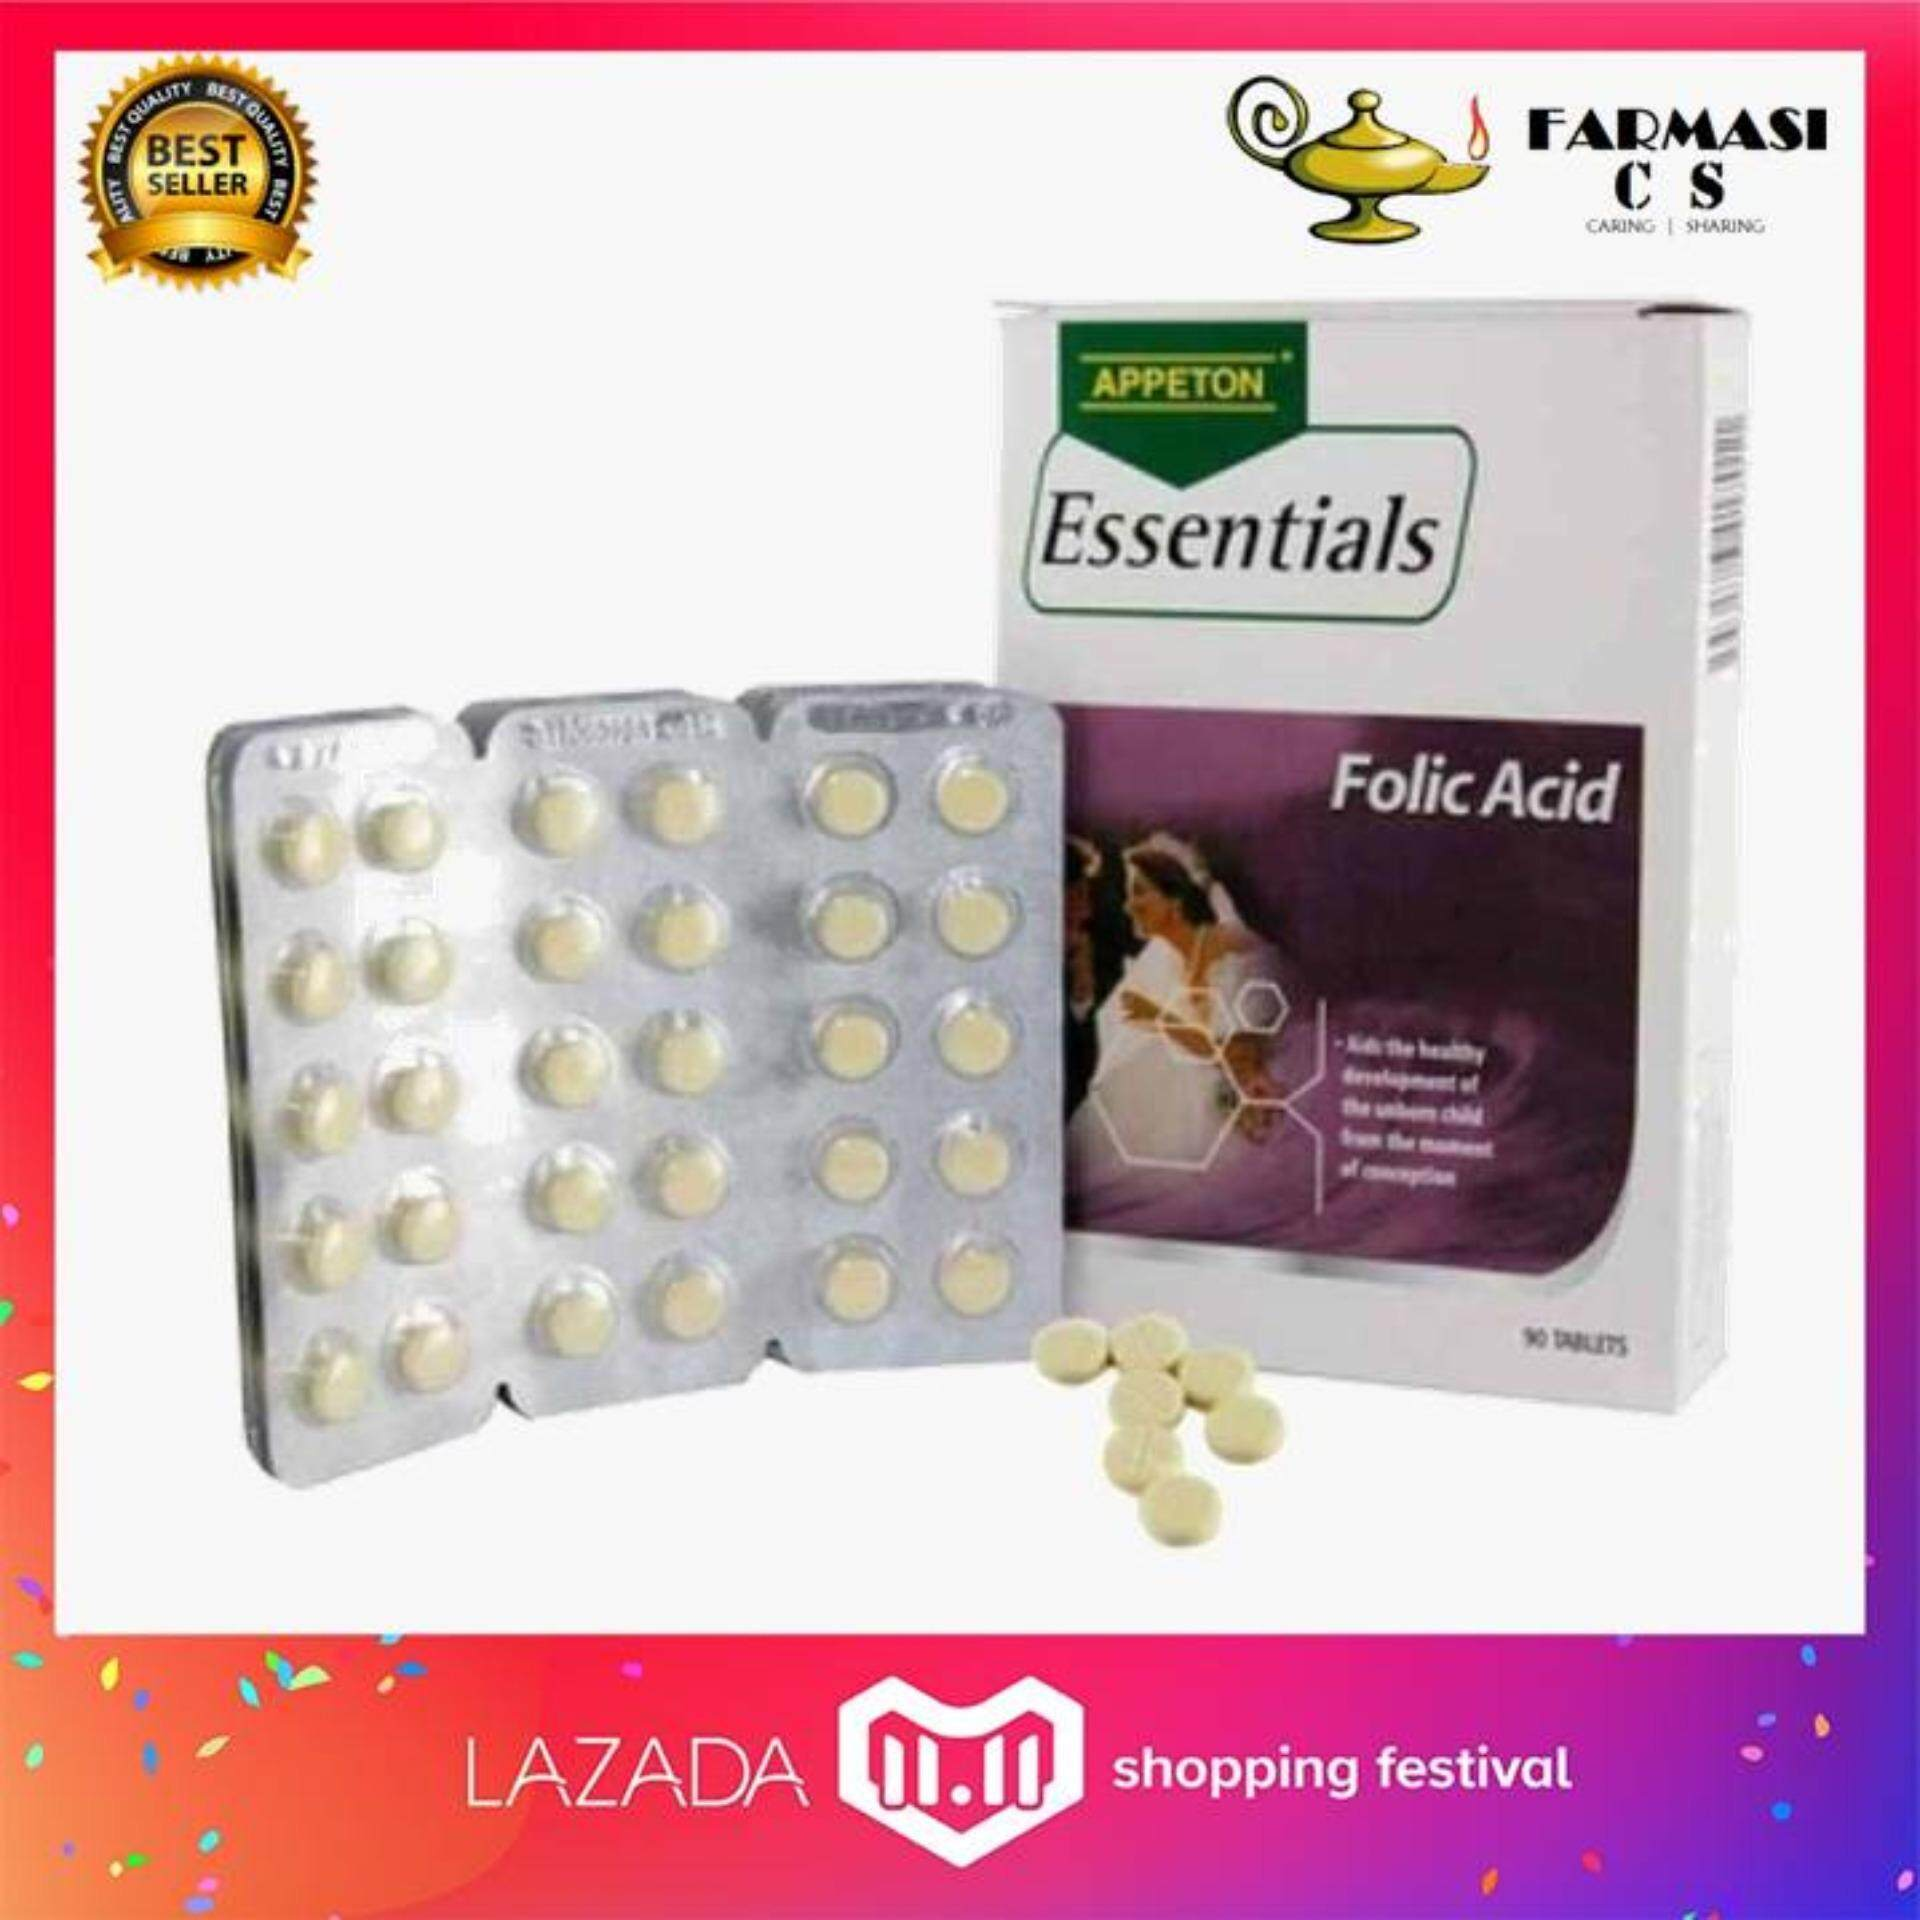 Food Supplements Products With Best Price At Lazada Malaysia Appeton Multivitamin 60tablet Essentials Folic Acid 90s Exp6 2021